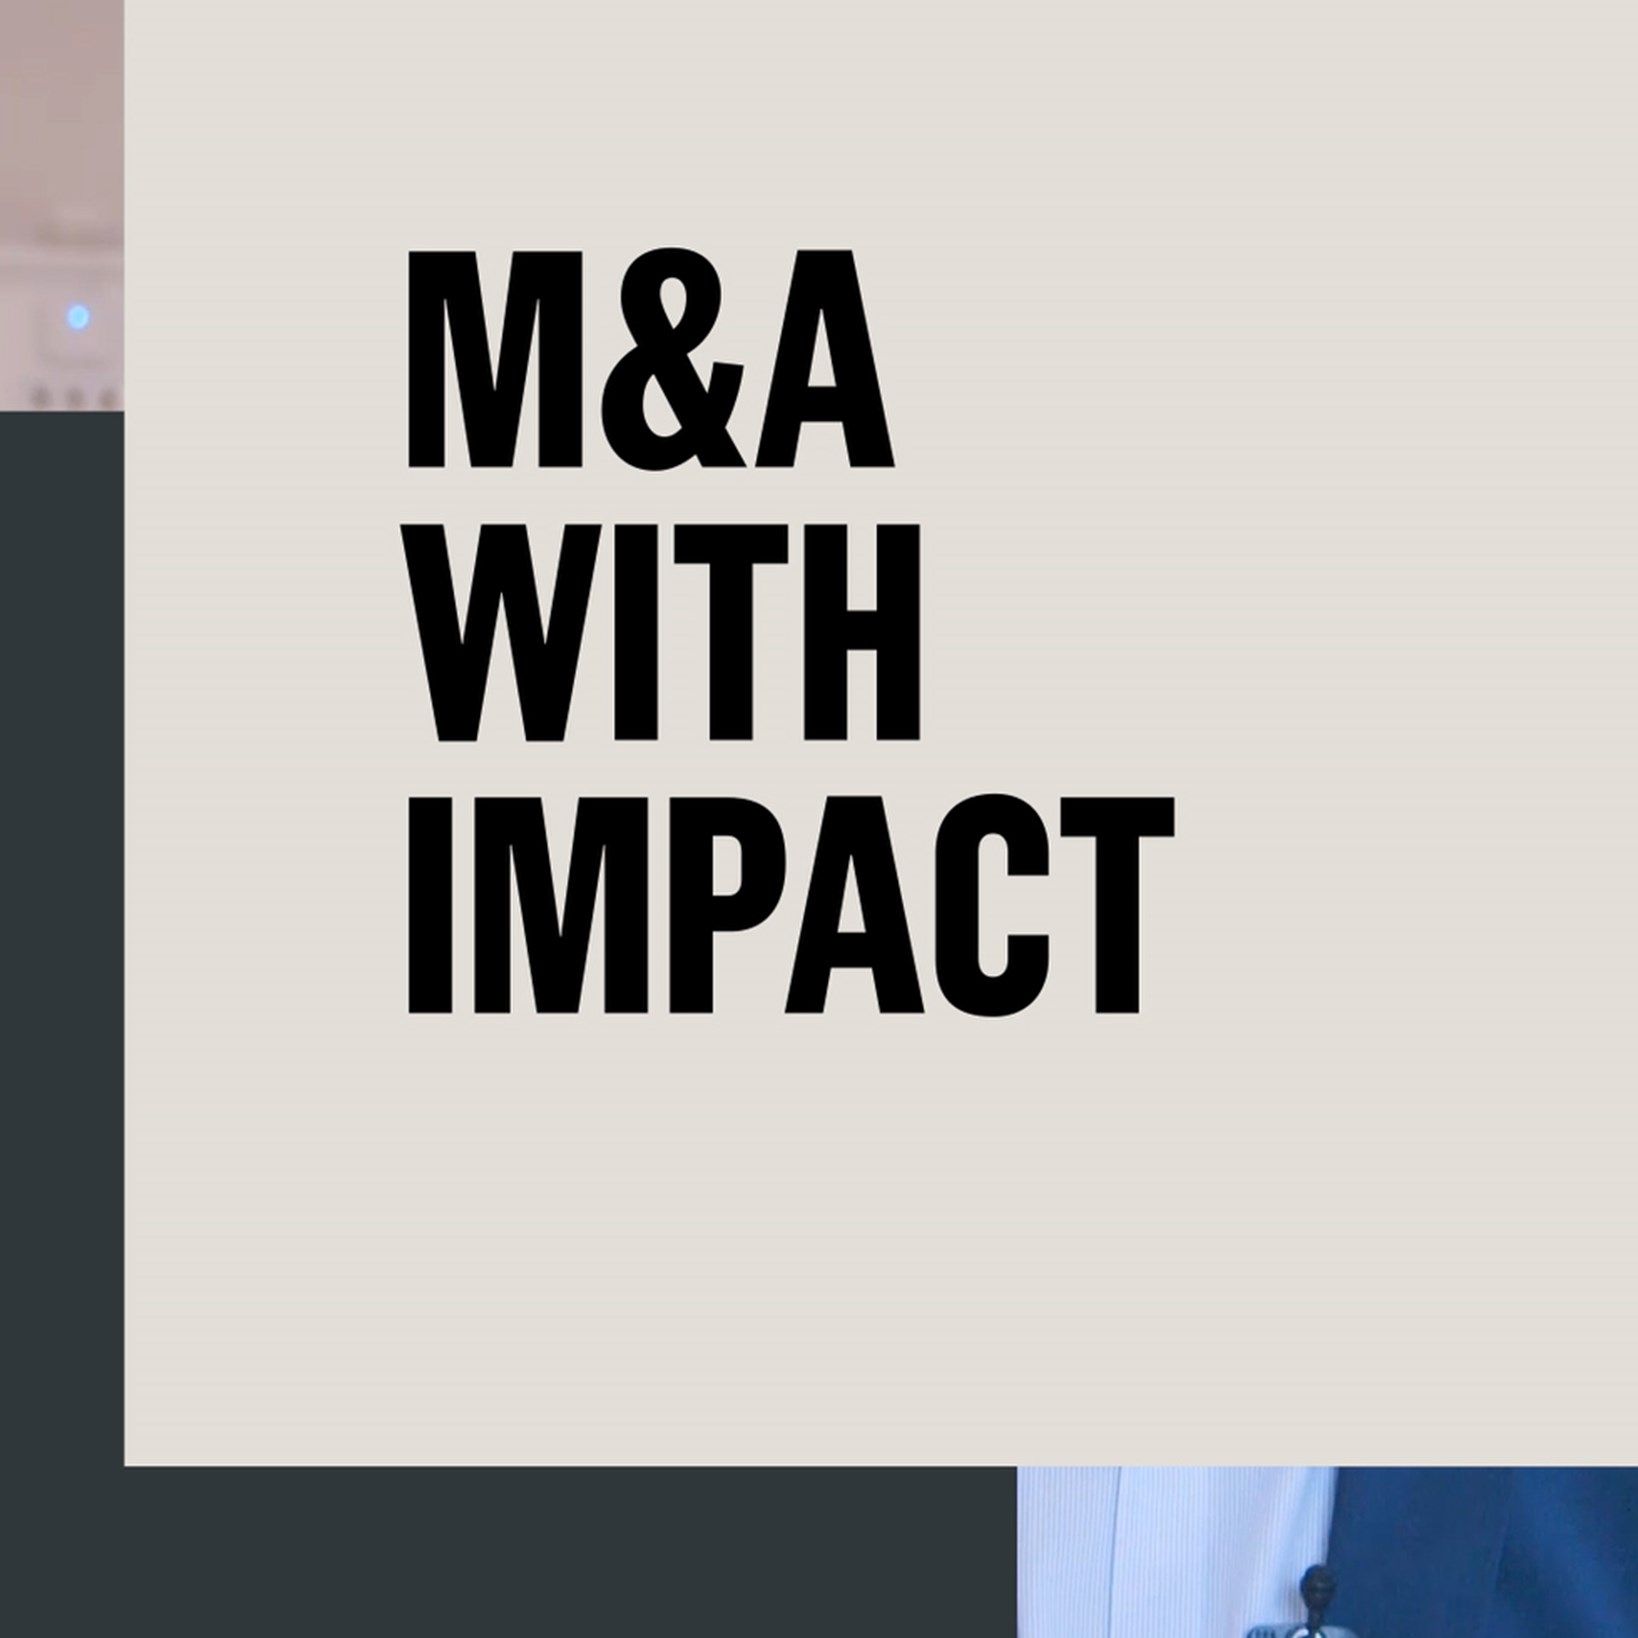 M&A with Impact